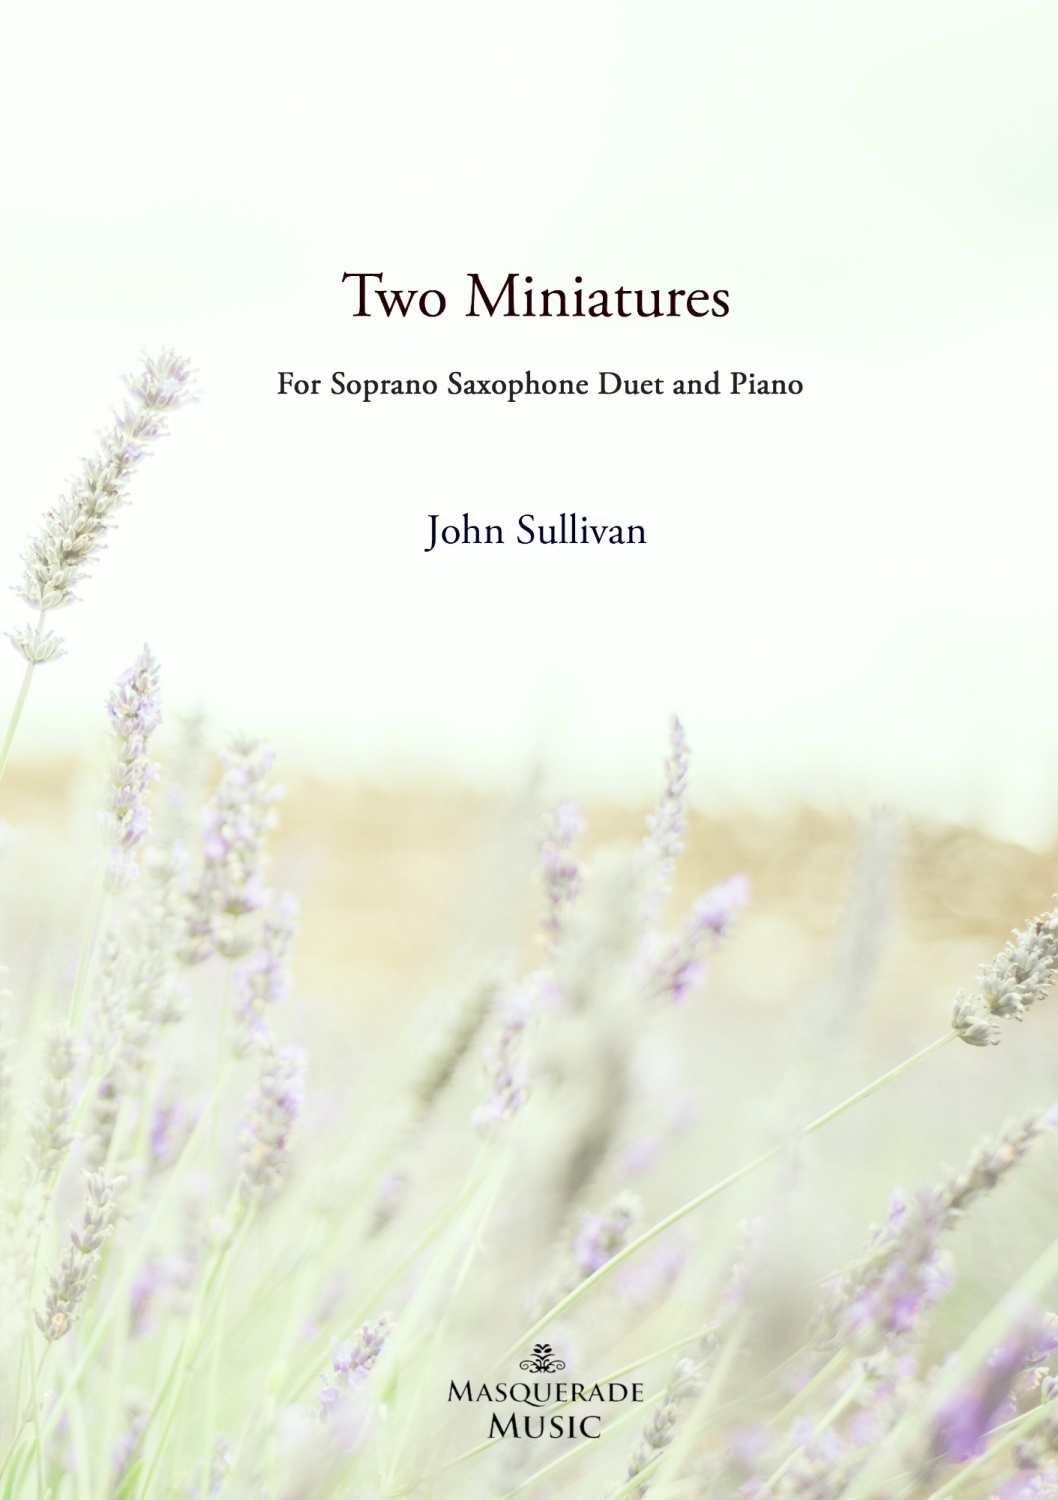 Two Miniatures for 2 Soprano Saxophones and Piano. By John Sullivan